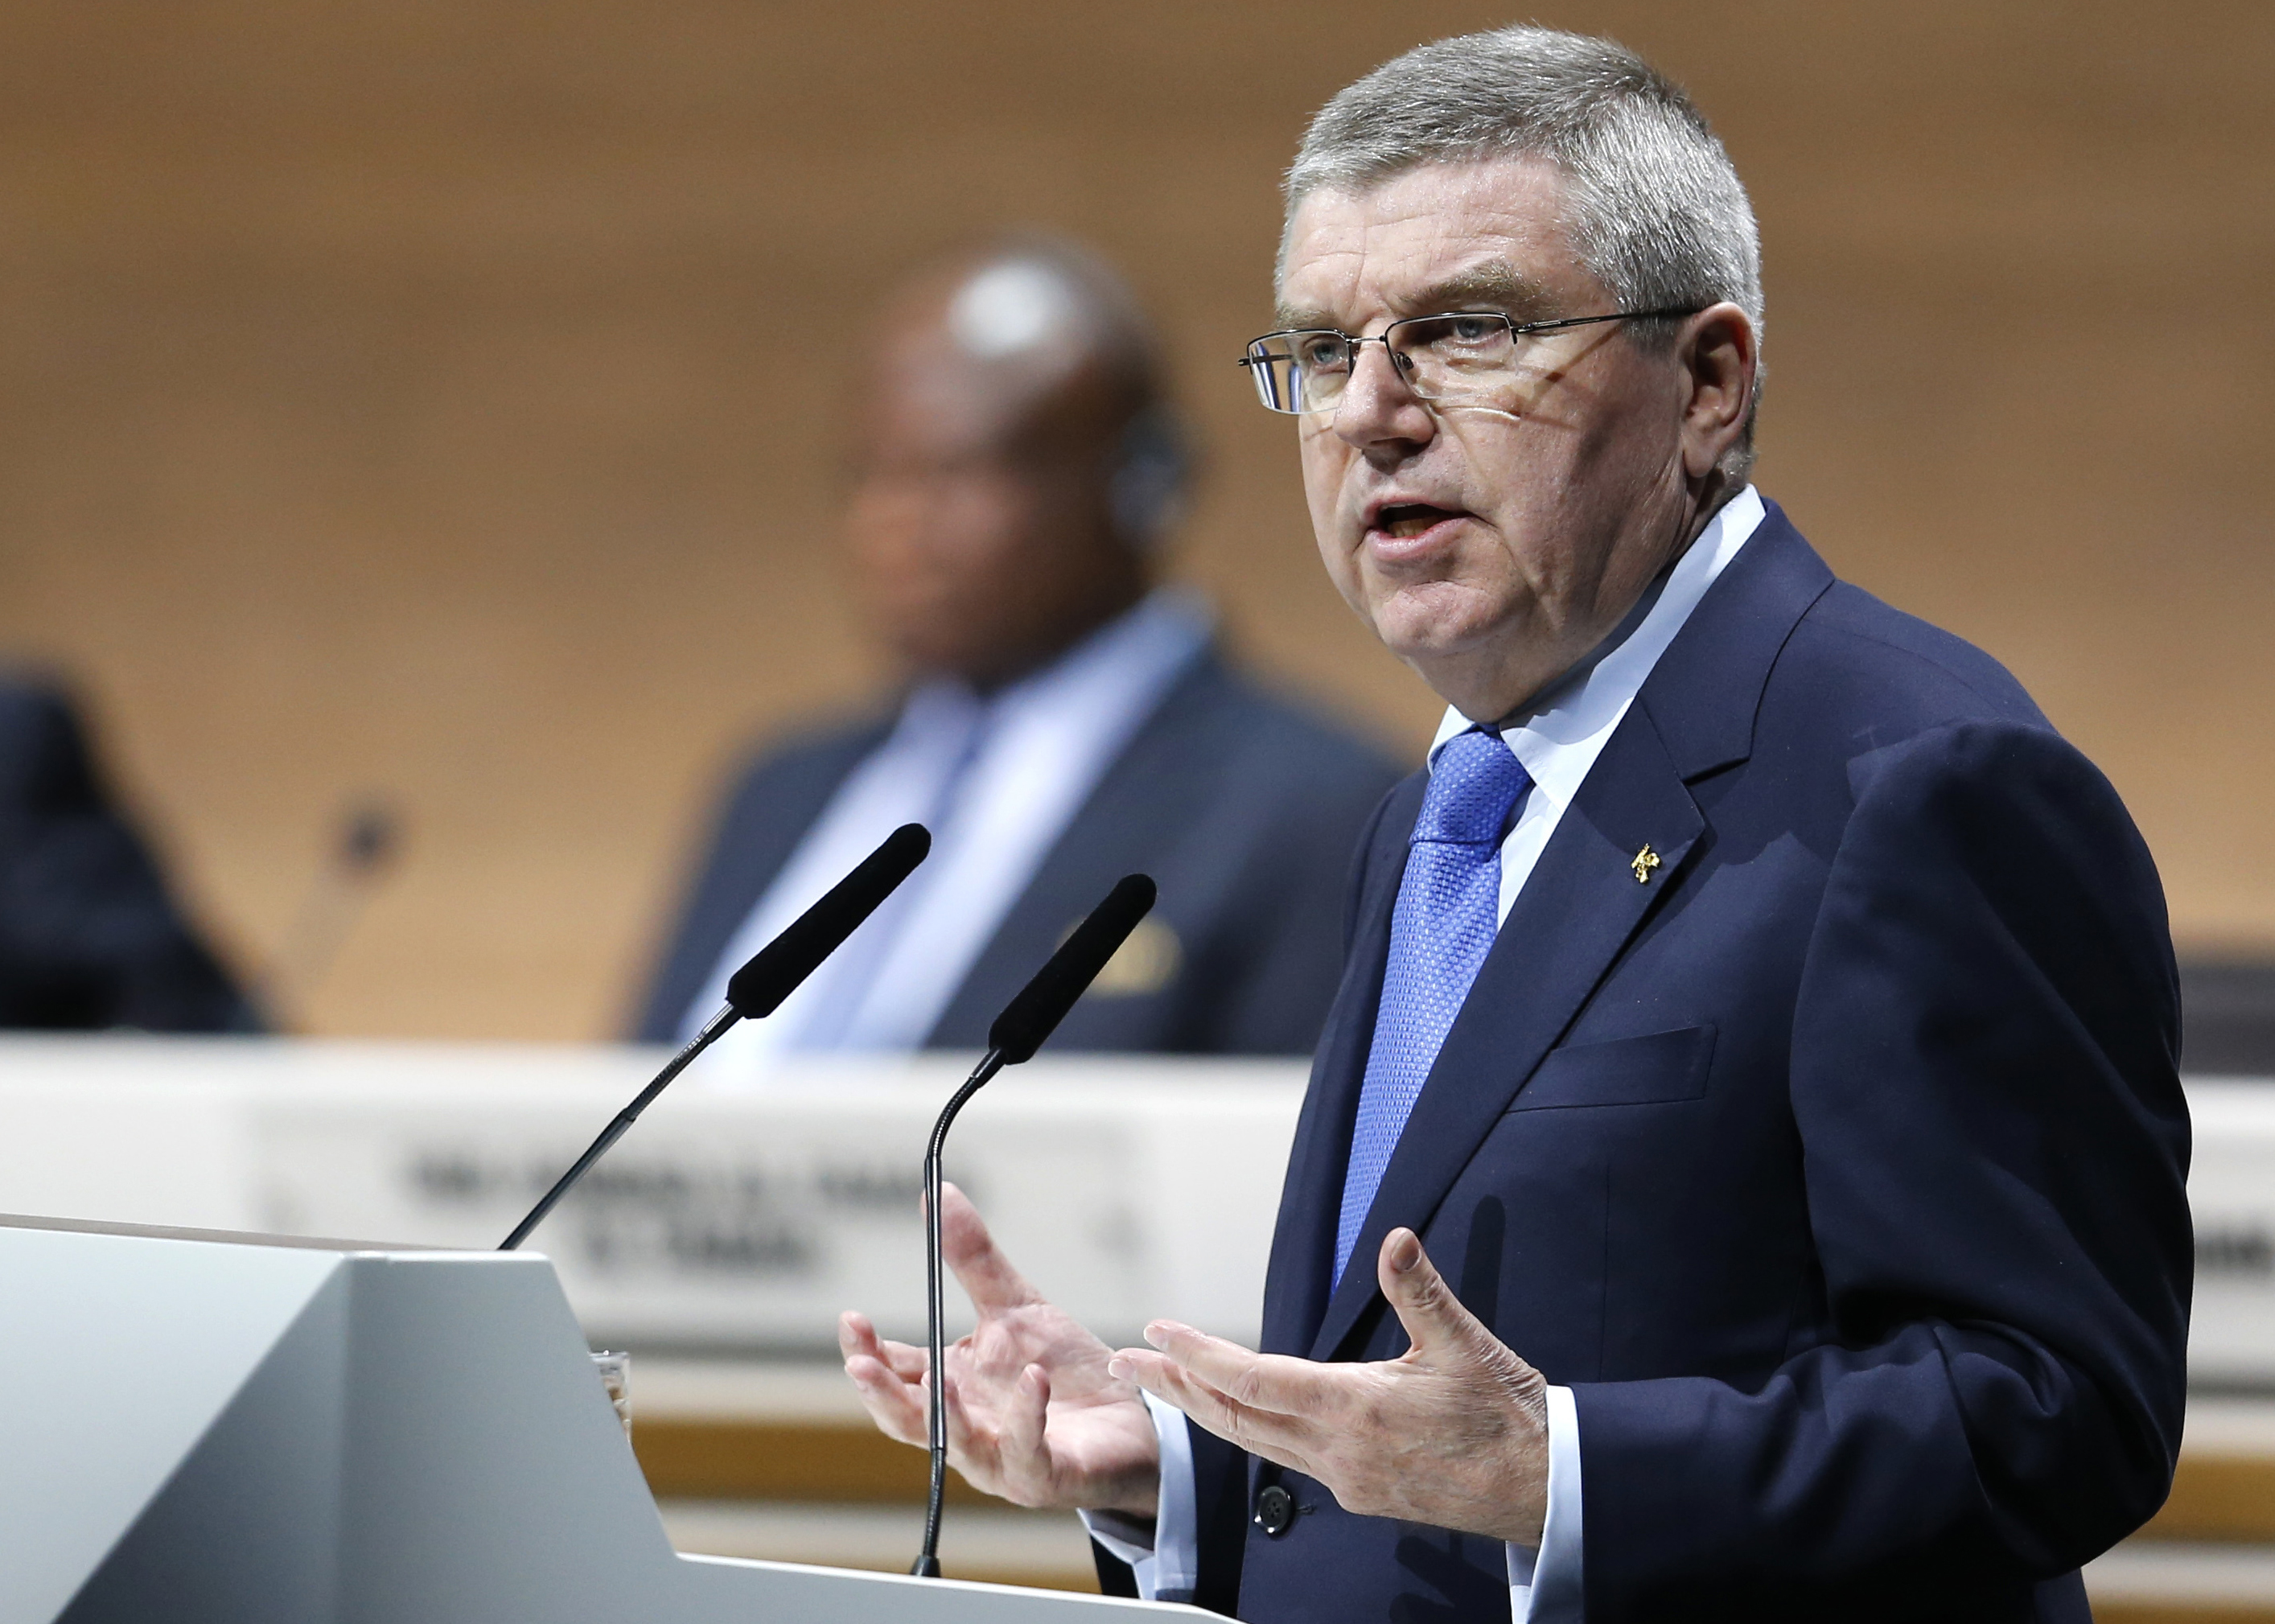 FILE - In this Friday, Feb. 26, 2016 file photo, IOC President Thomas Bach speaks during the extraordinary FIFA congress in Zurich, Switzerland. Olympic leader Thomas Bach's grand plan was to streamline the Olympics, cut costs and encourage more cities to